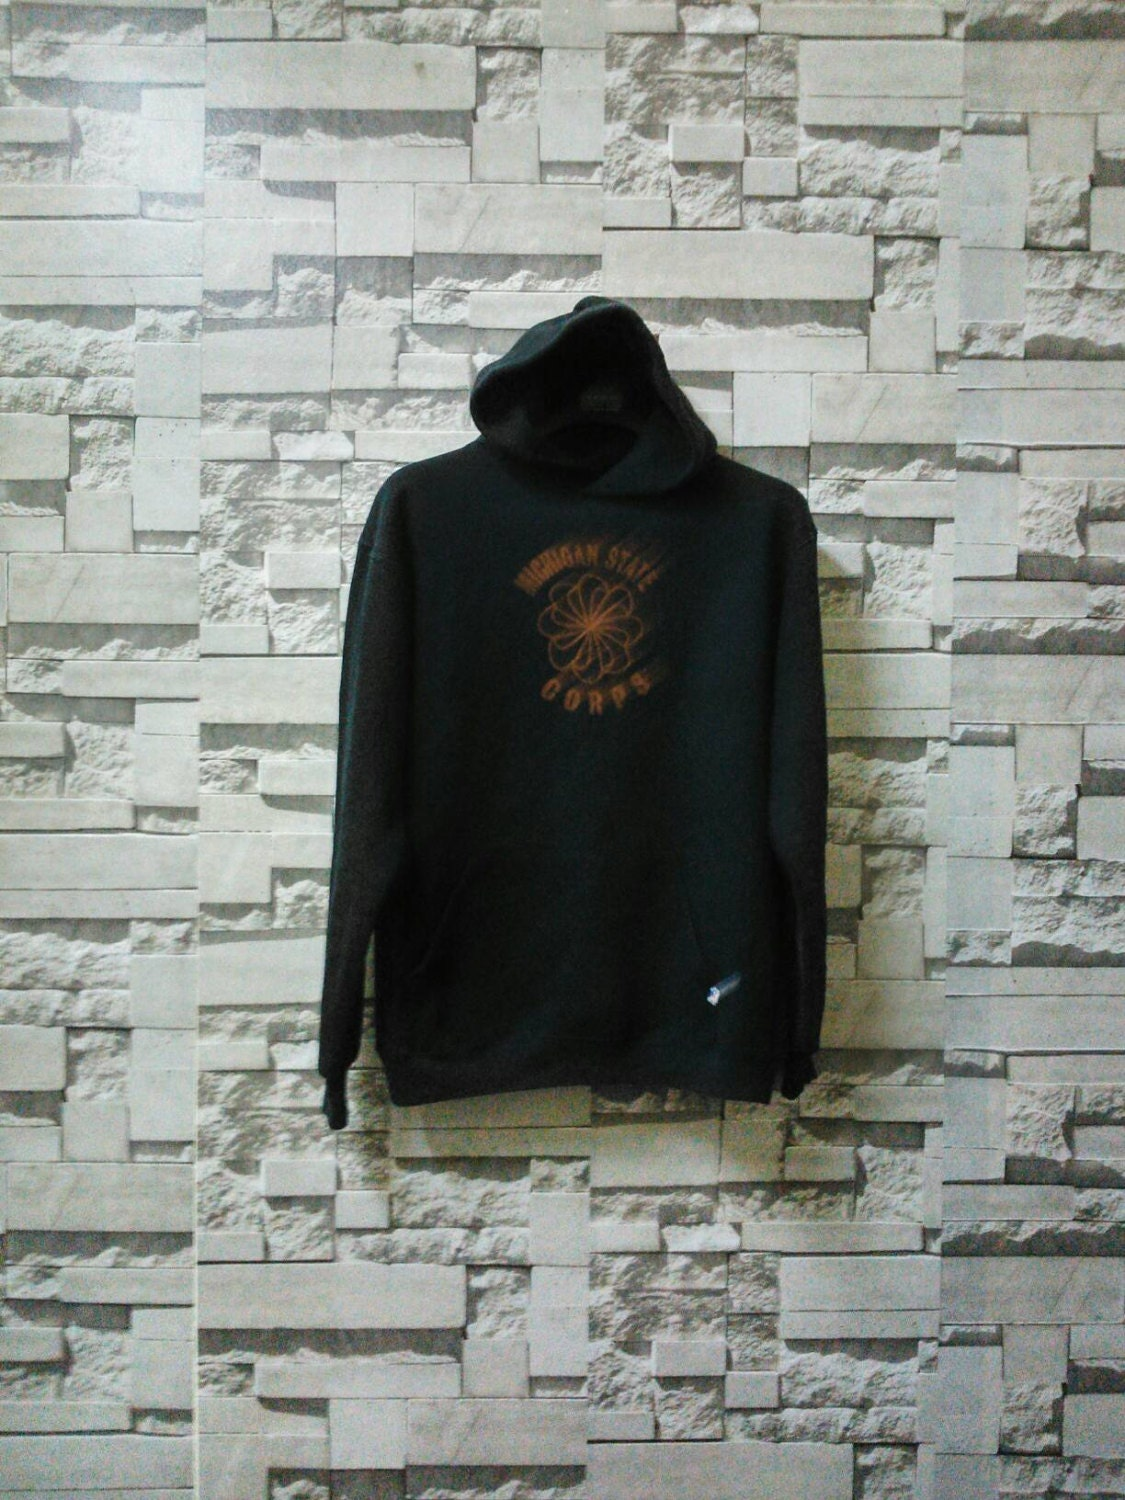 Vintage Champion sweatshirt hoodie made in usa spellout supreme adidas nike guess polo ralph lauren hipster ooq9gIm